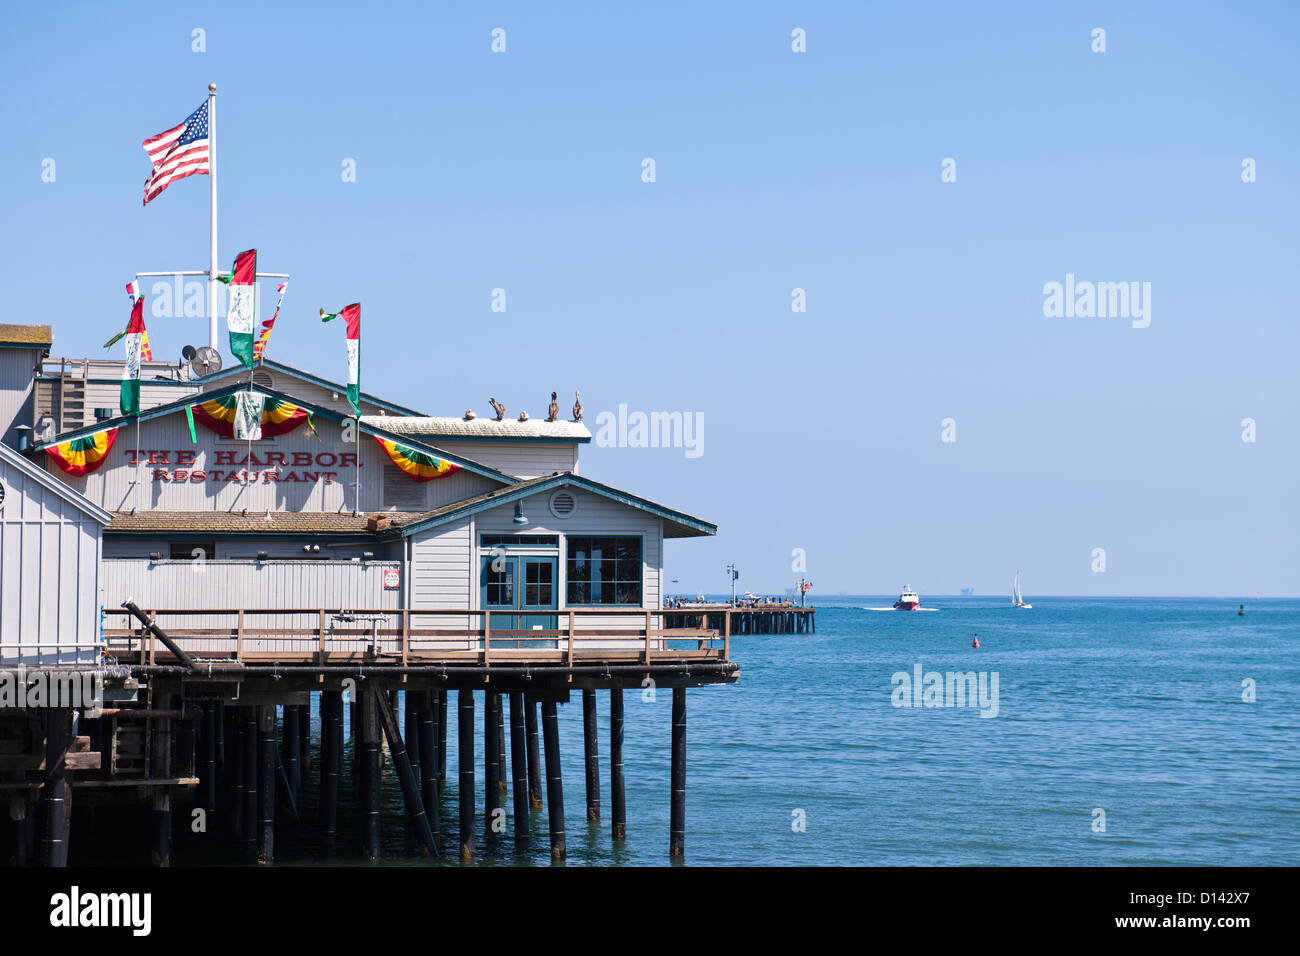 Italian Restaurant On The Pier Santa Barbara Stock Photo